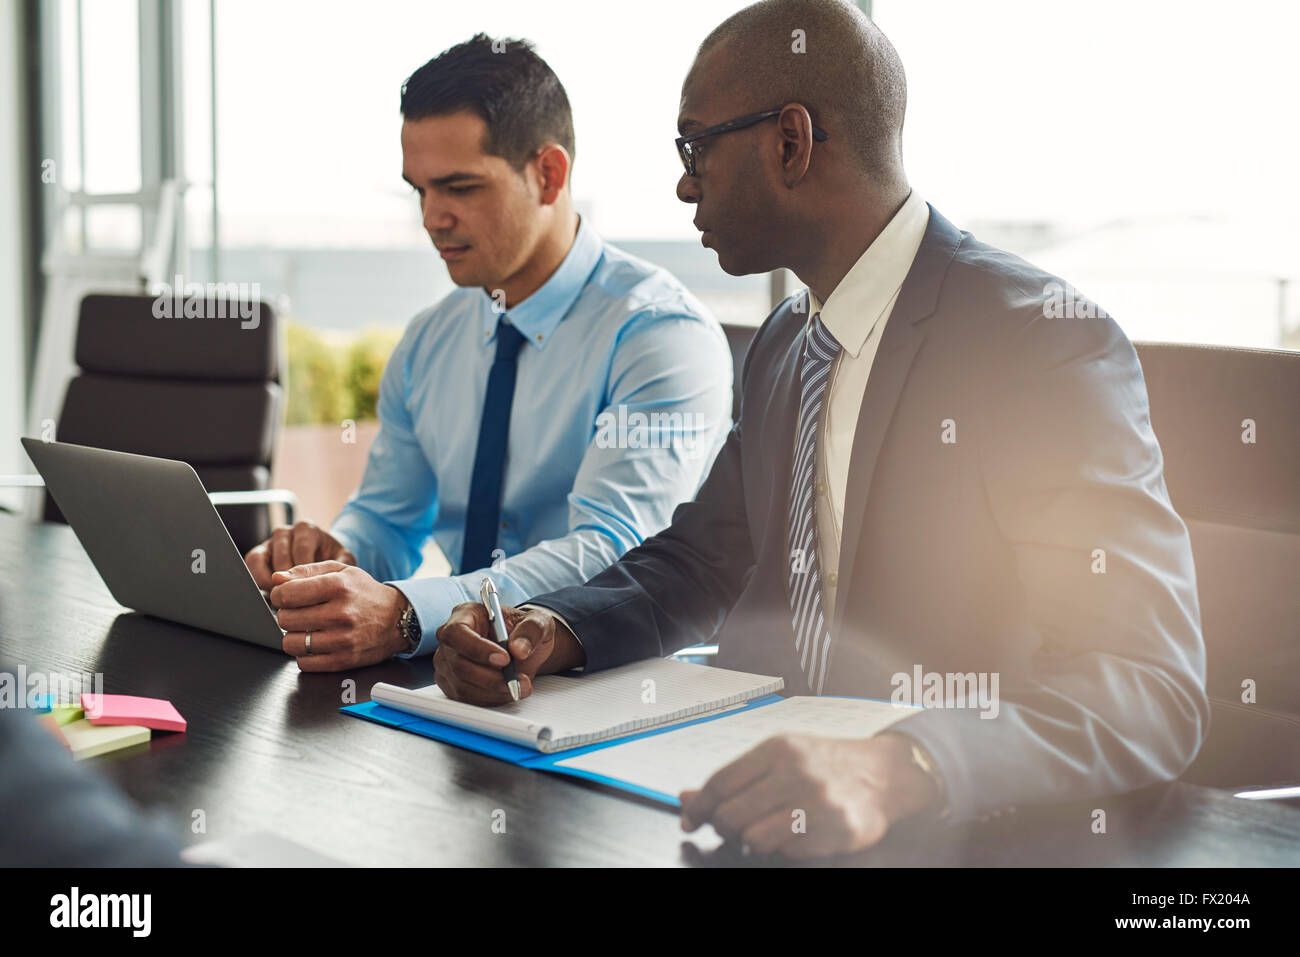 Two experienced business executives in a meeting seated at a table discussing paperwork and information on a laptop - Stock Image